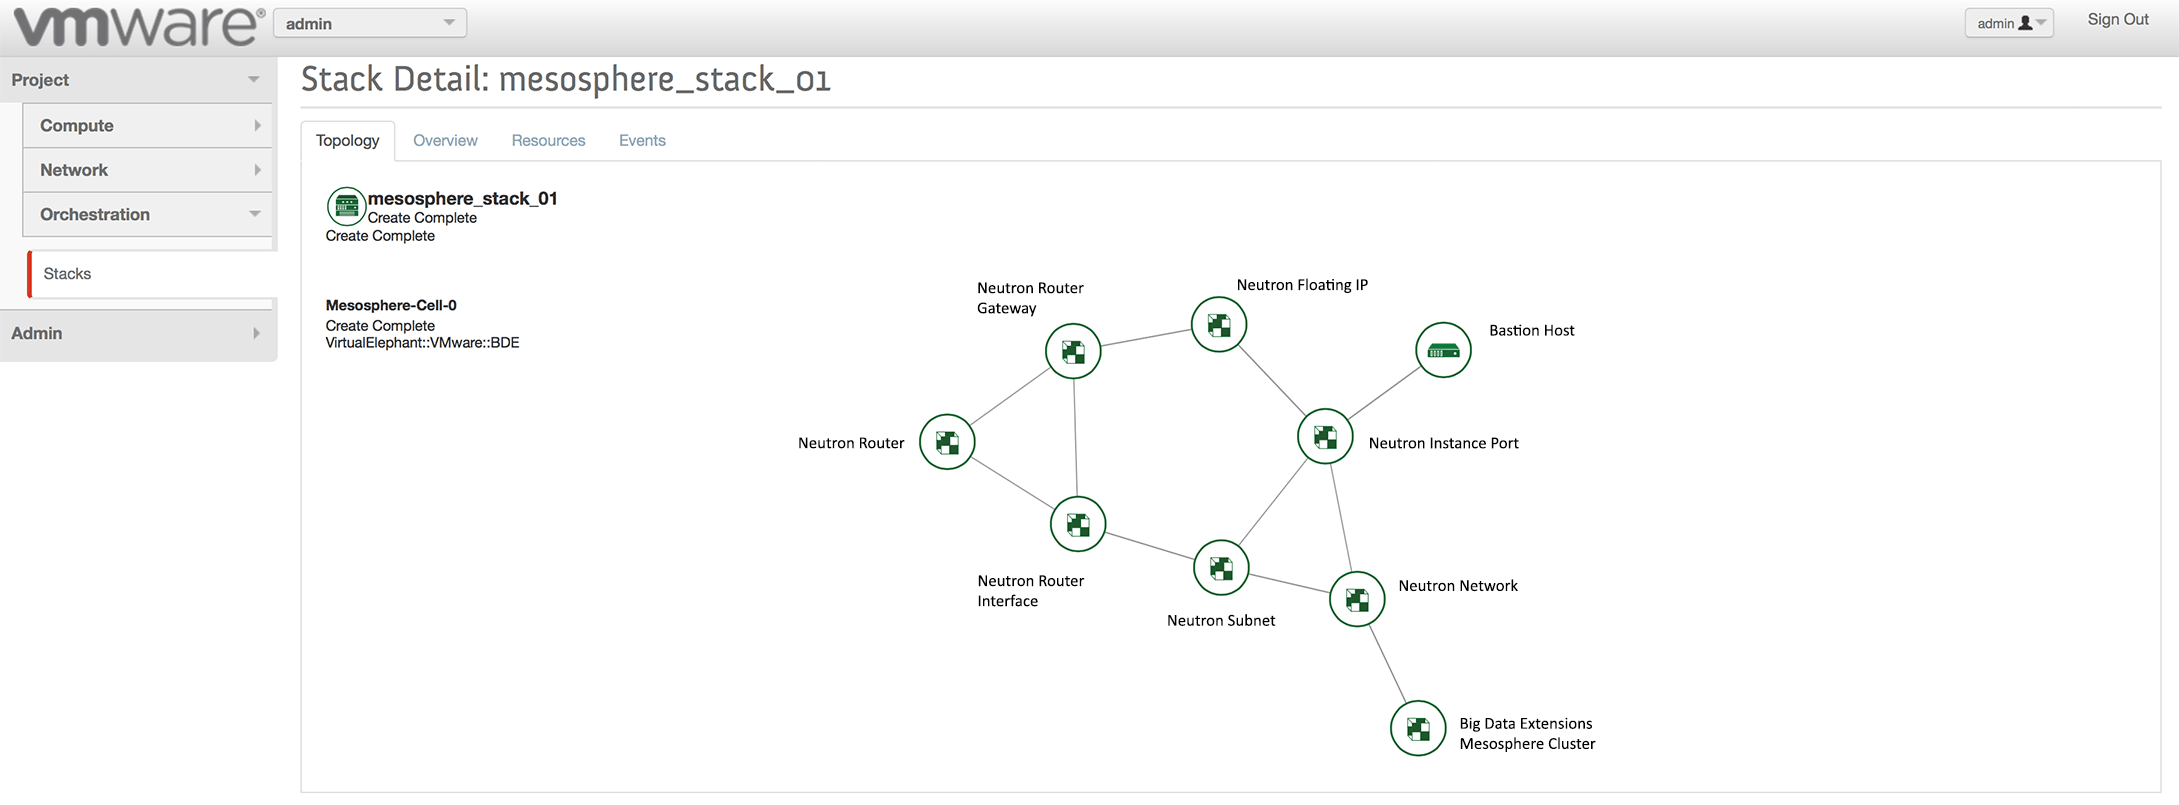 the deployment will then proceed and you can view the topology of the stack within your environment if you use the json provided in github